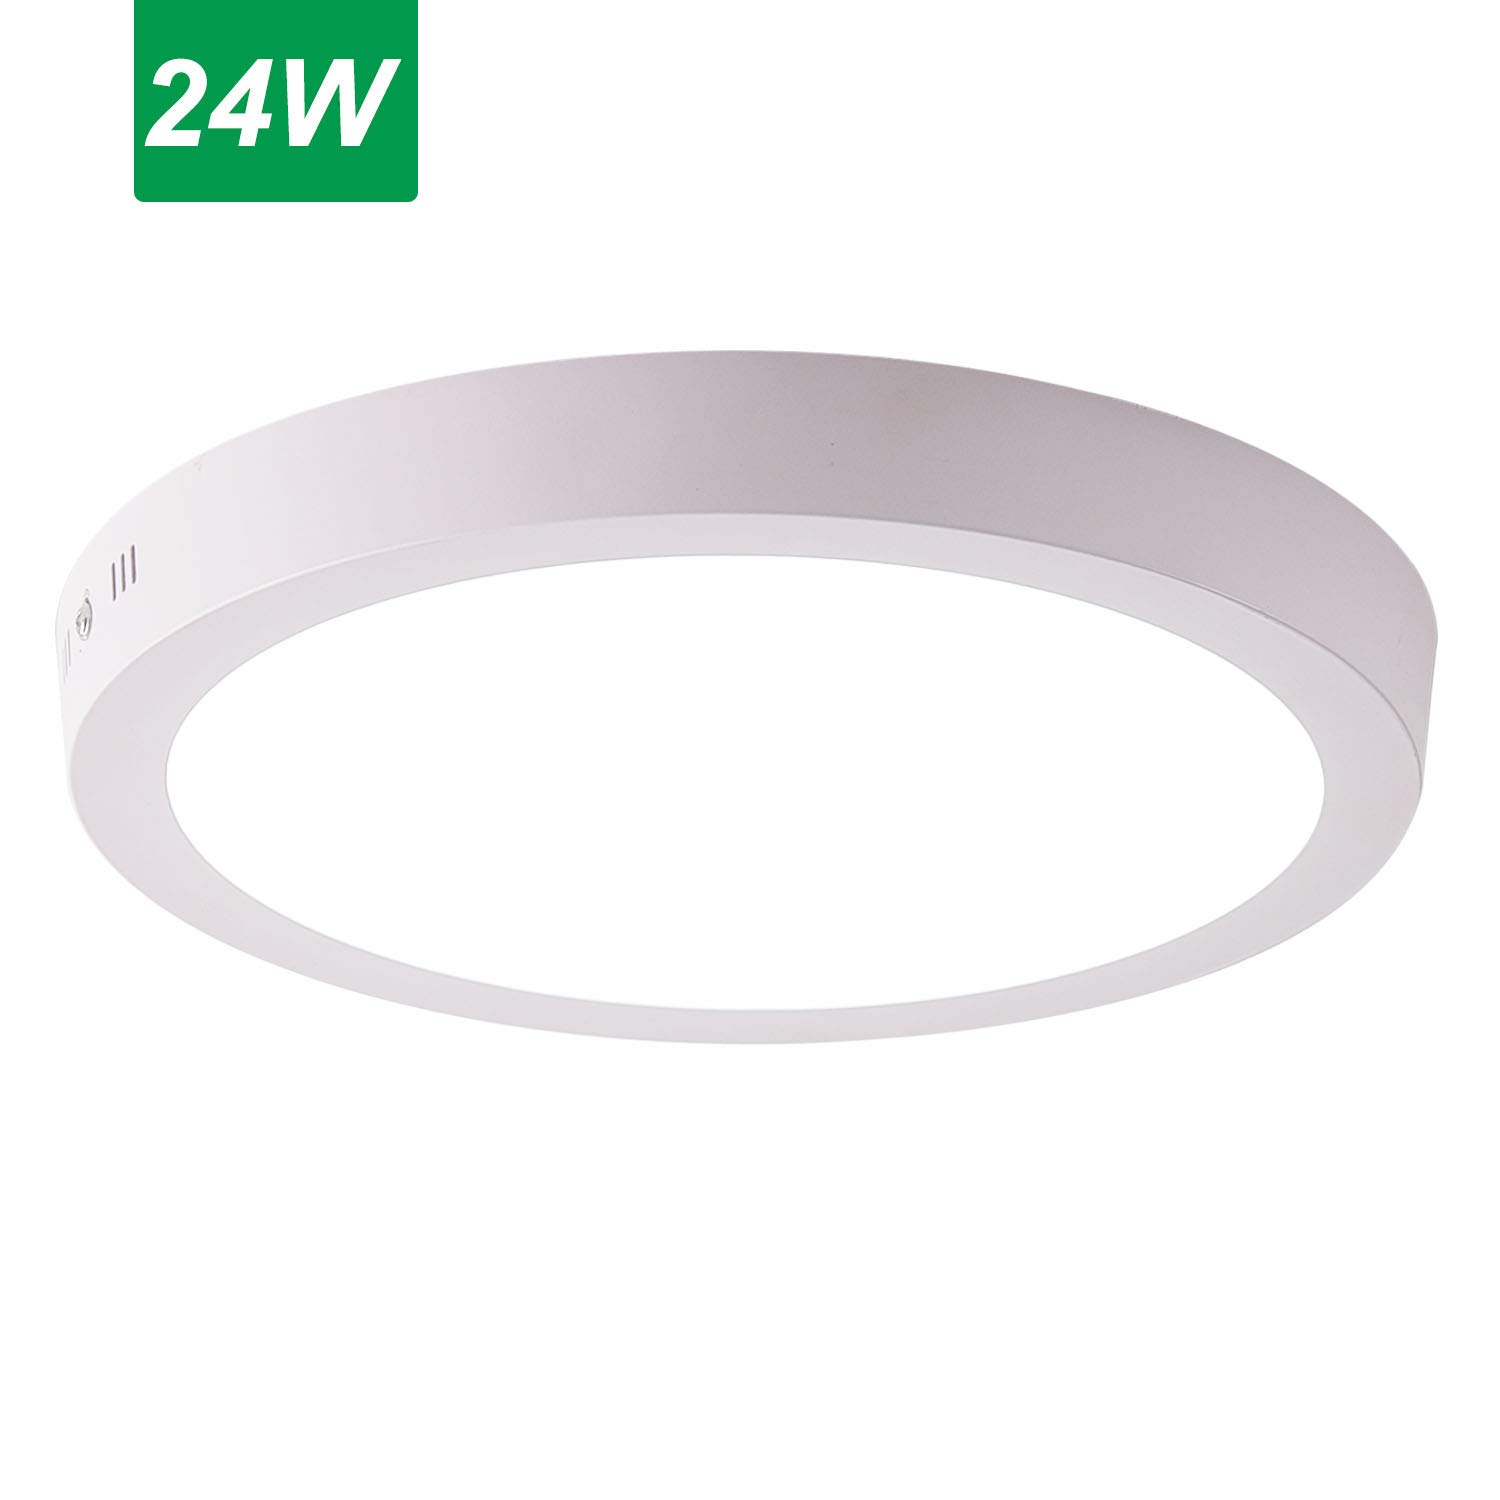 Jaycomey Round Flush Mount Ceiling Light,24W Surface Mounted LED Kitchen Ceiling Light Fixture,Panel Ceiling Lamps for Laundry, Stairwell, Kitchen, Bedroom, 6500K/Cool White,11.8 Inches